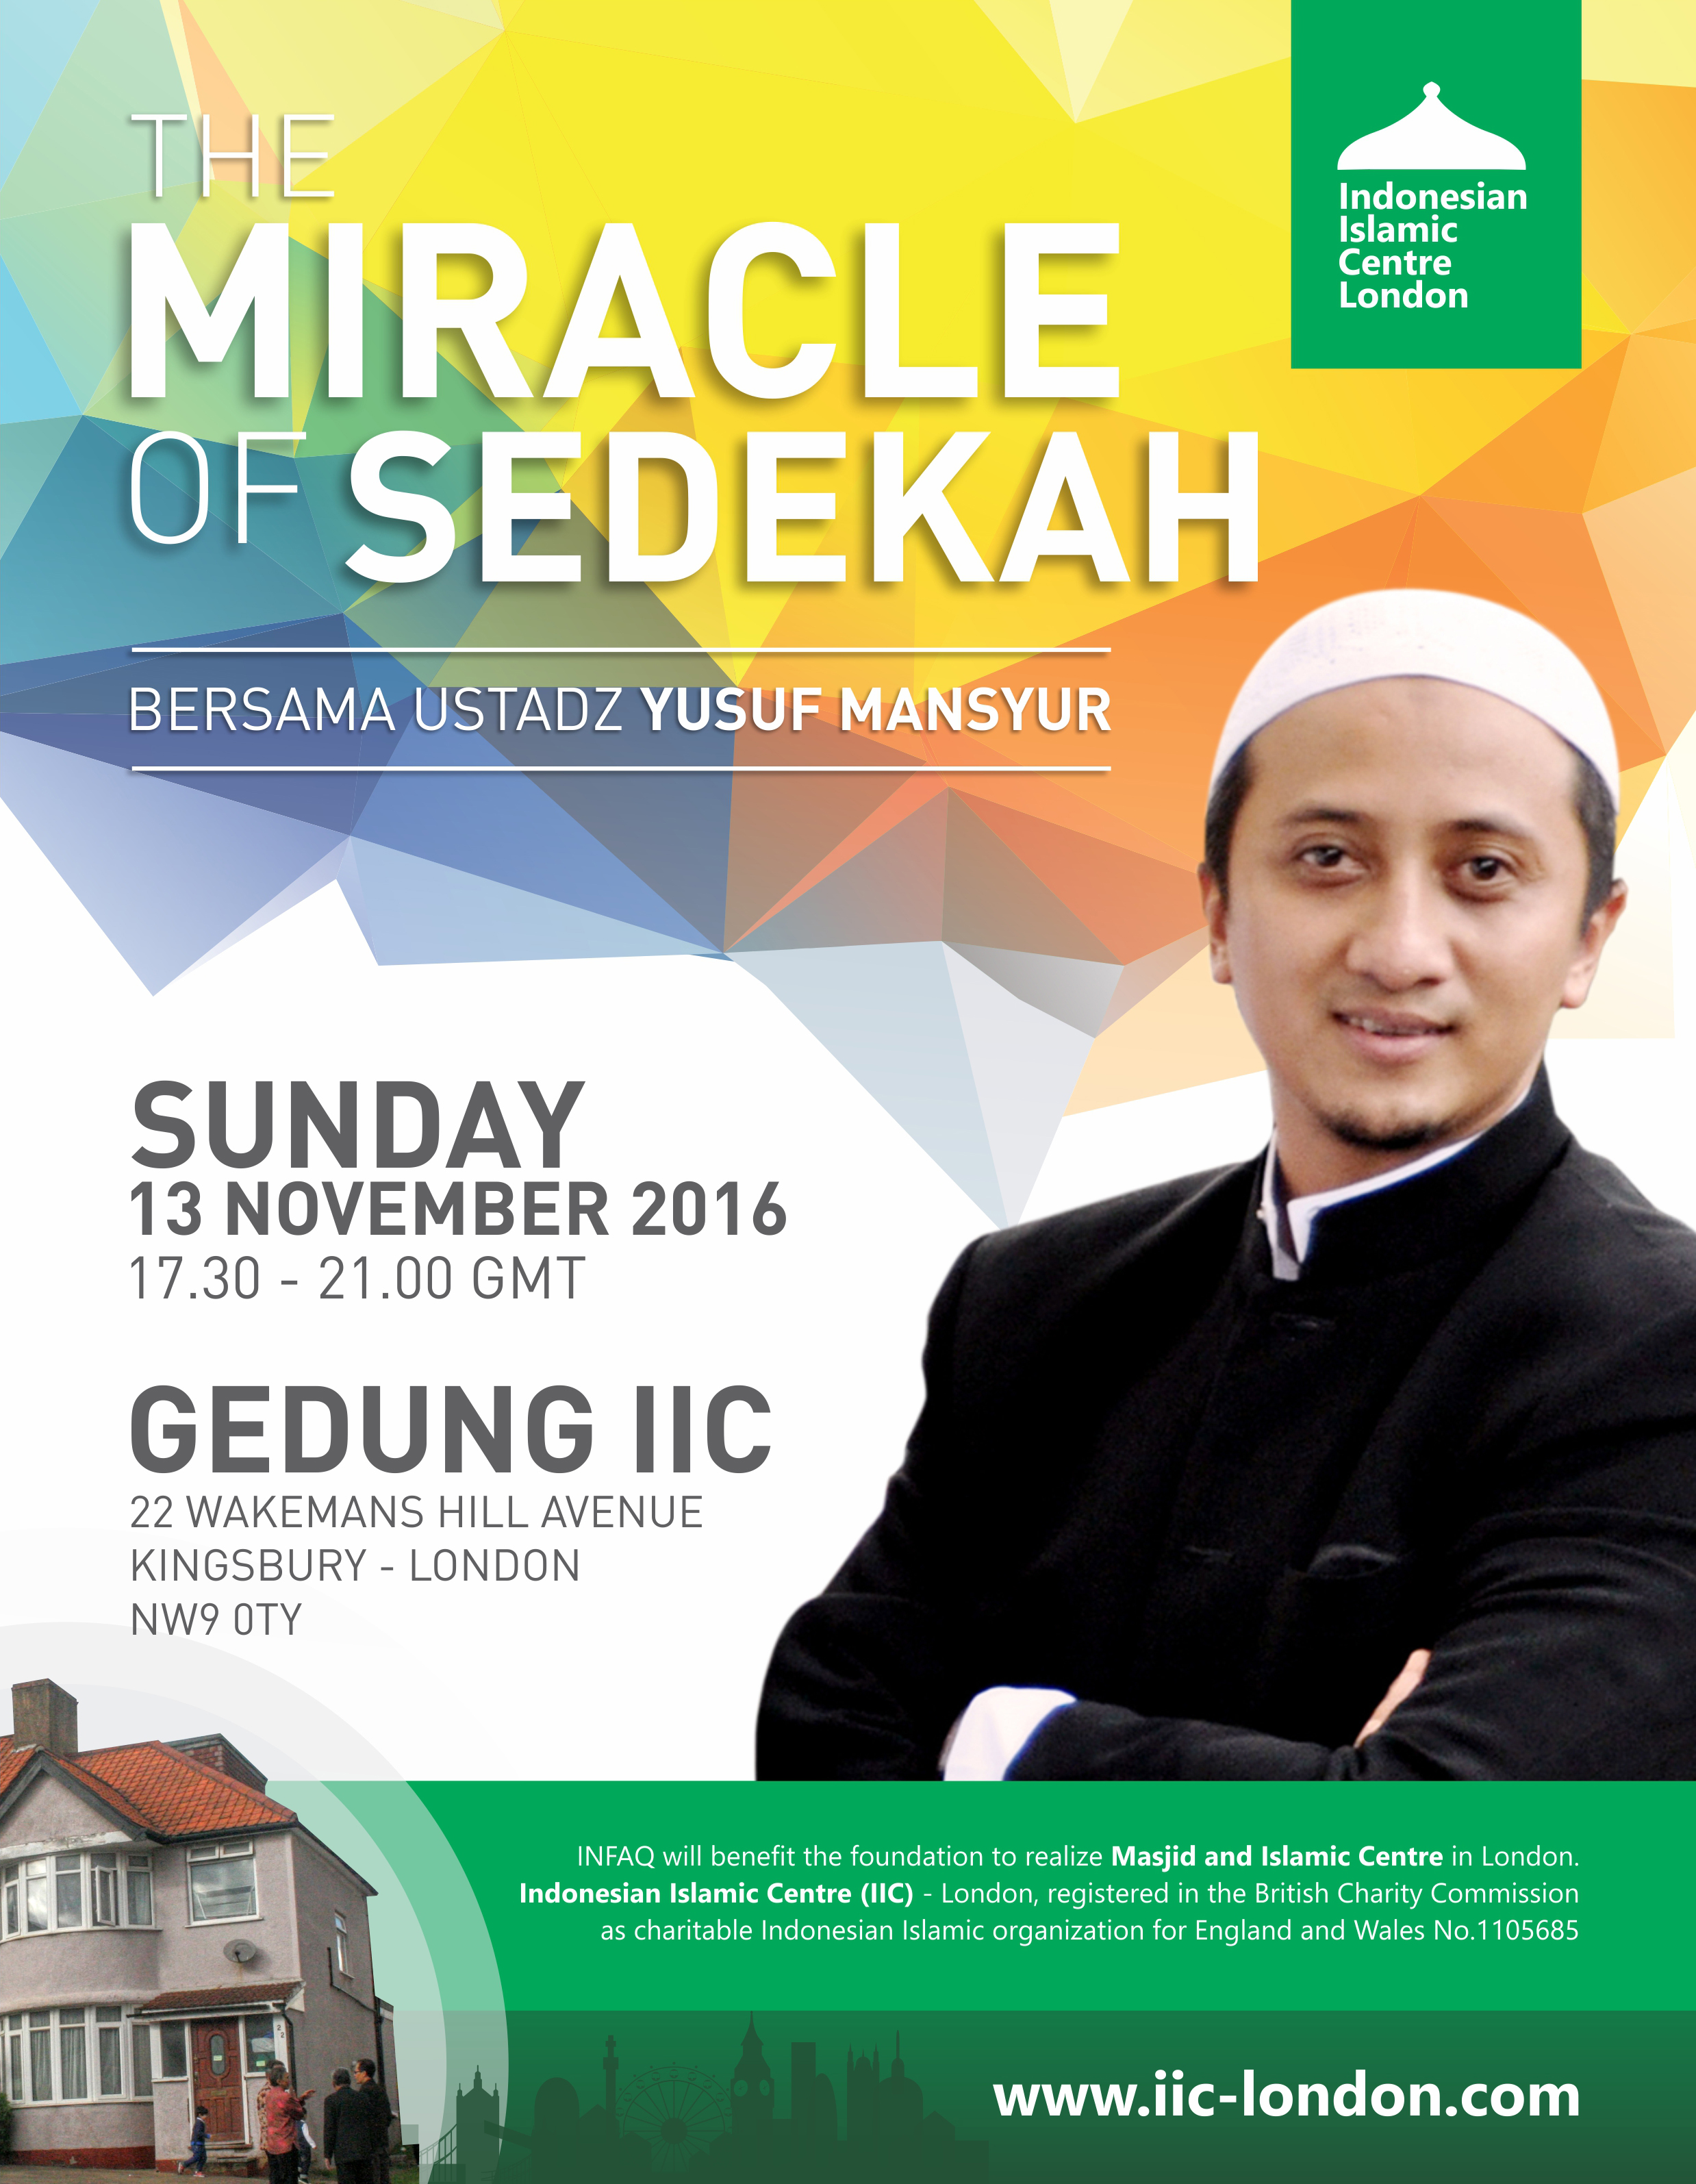 The Miracle of Sedekah – with Ust. Yusuf Mansyur